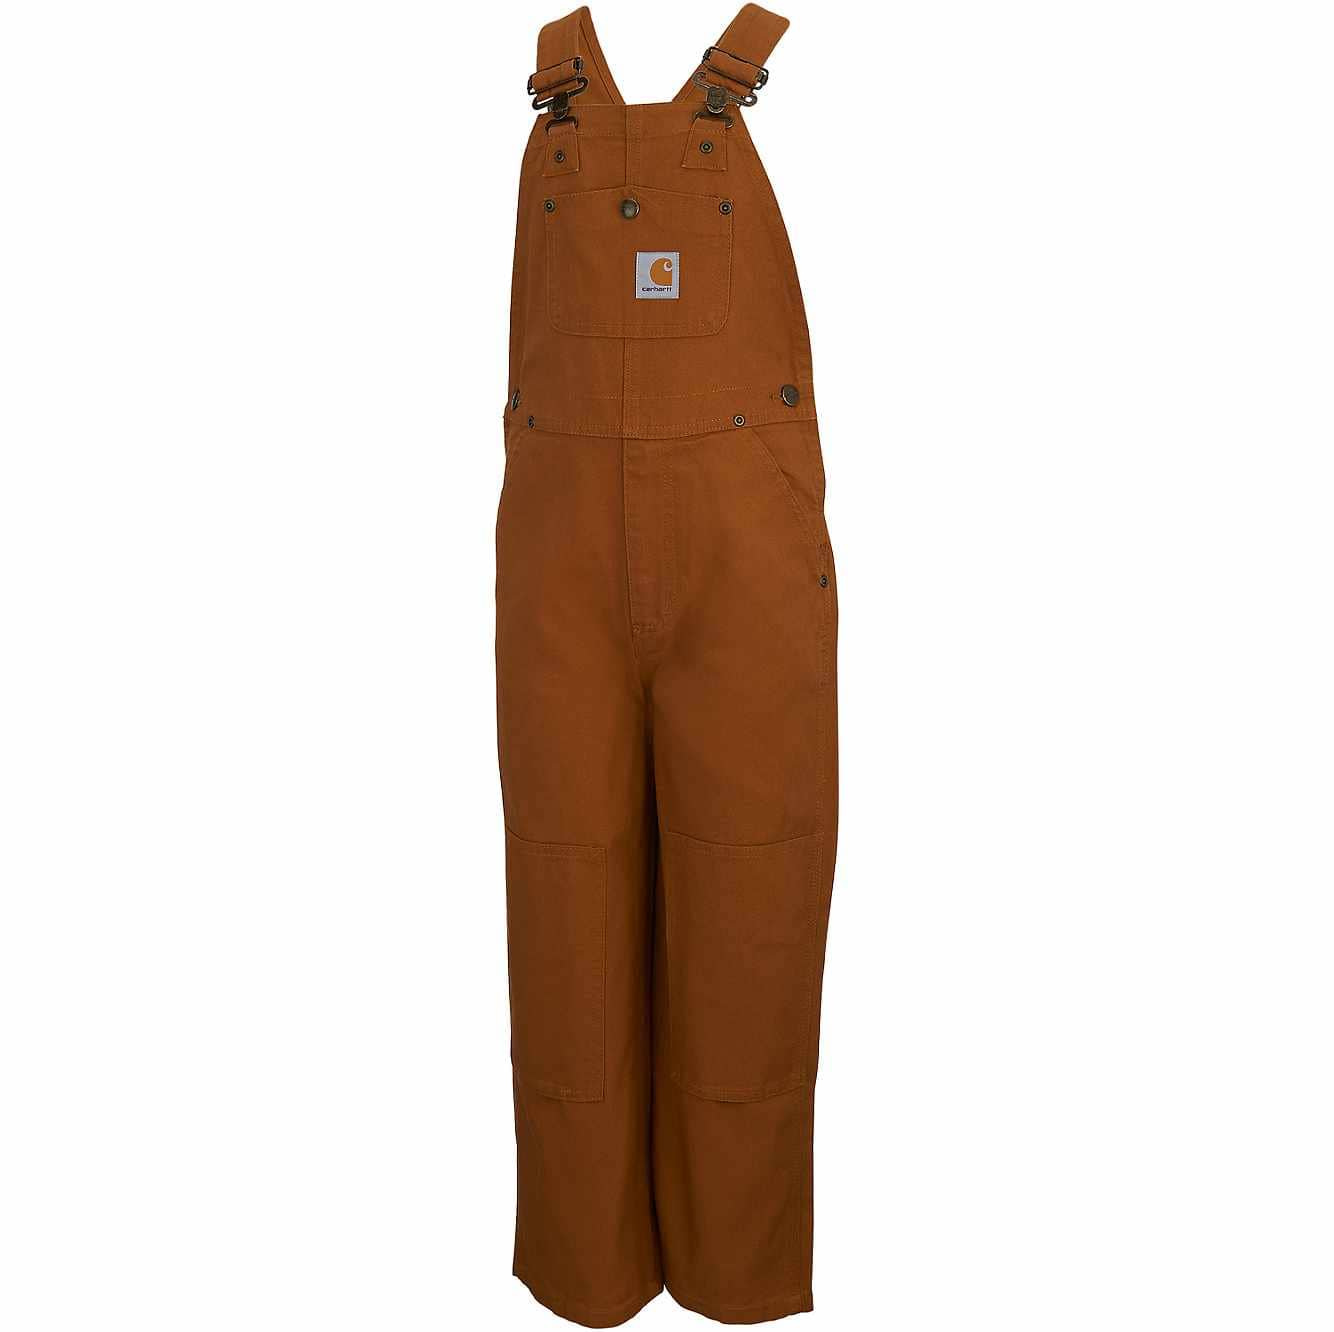 Picture of Duck Washed Bib Overall Sizes 4-7 in Carhartt Brown